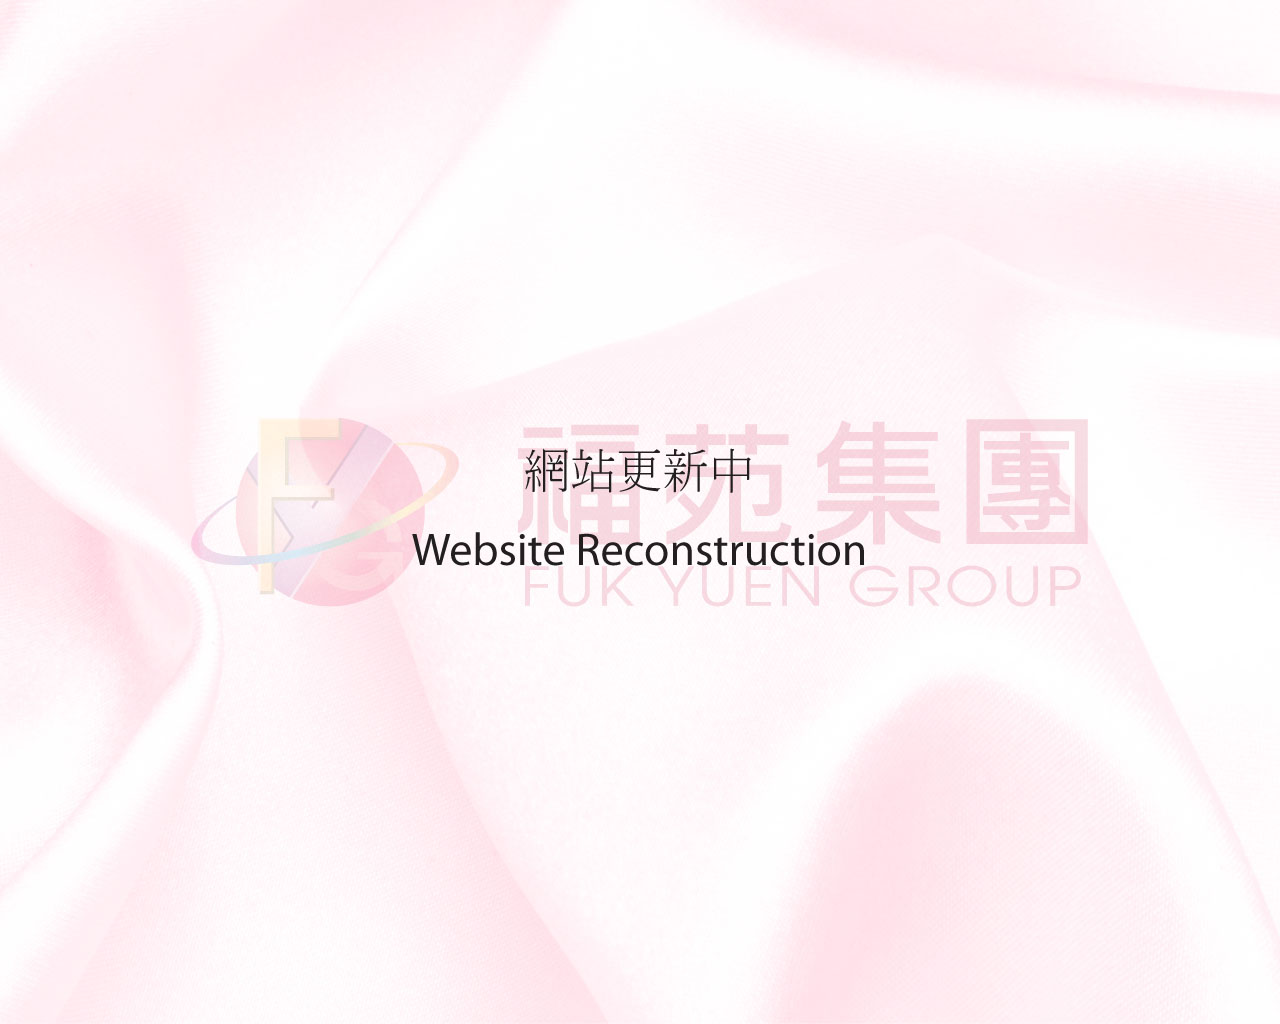 Website Reconstruction...